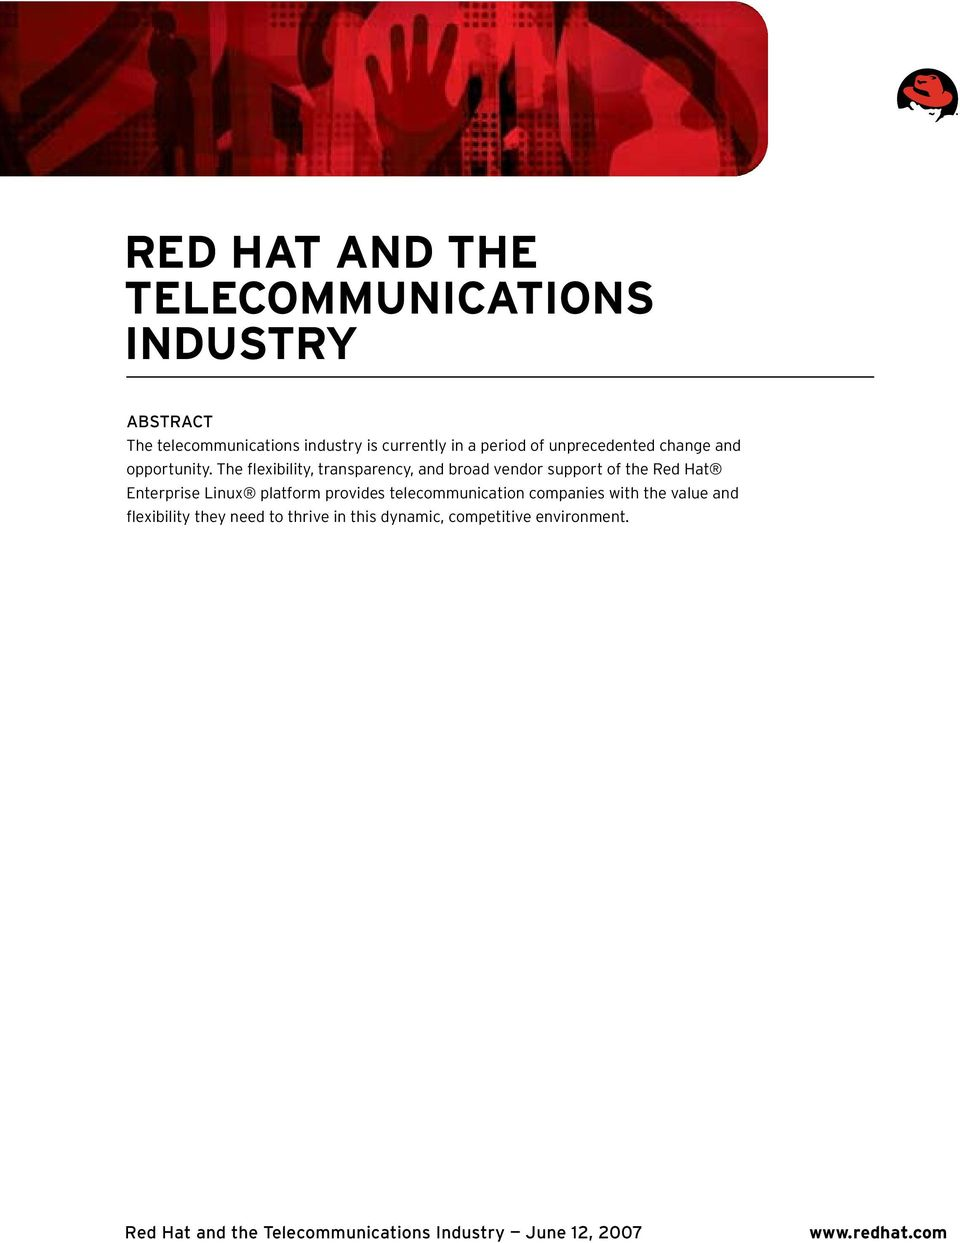 The flexibility, transparency, and broad vendor support of the Red Hat Enterprise Linux platform